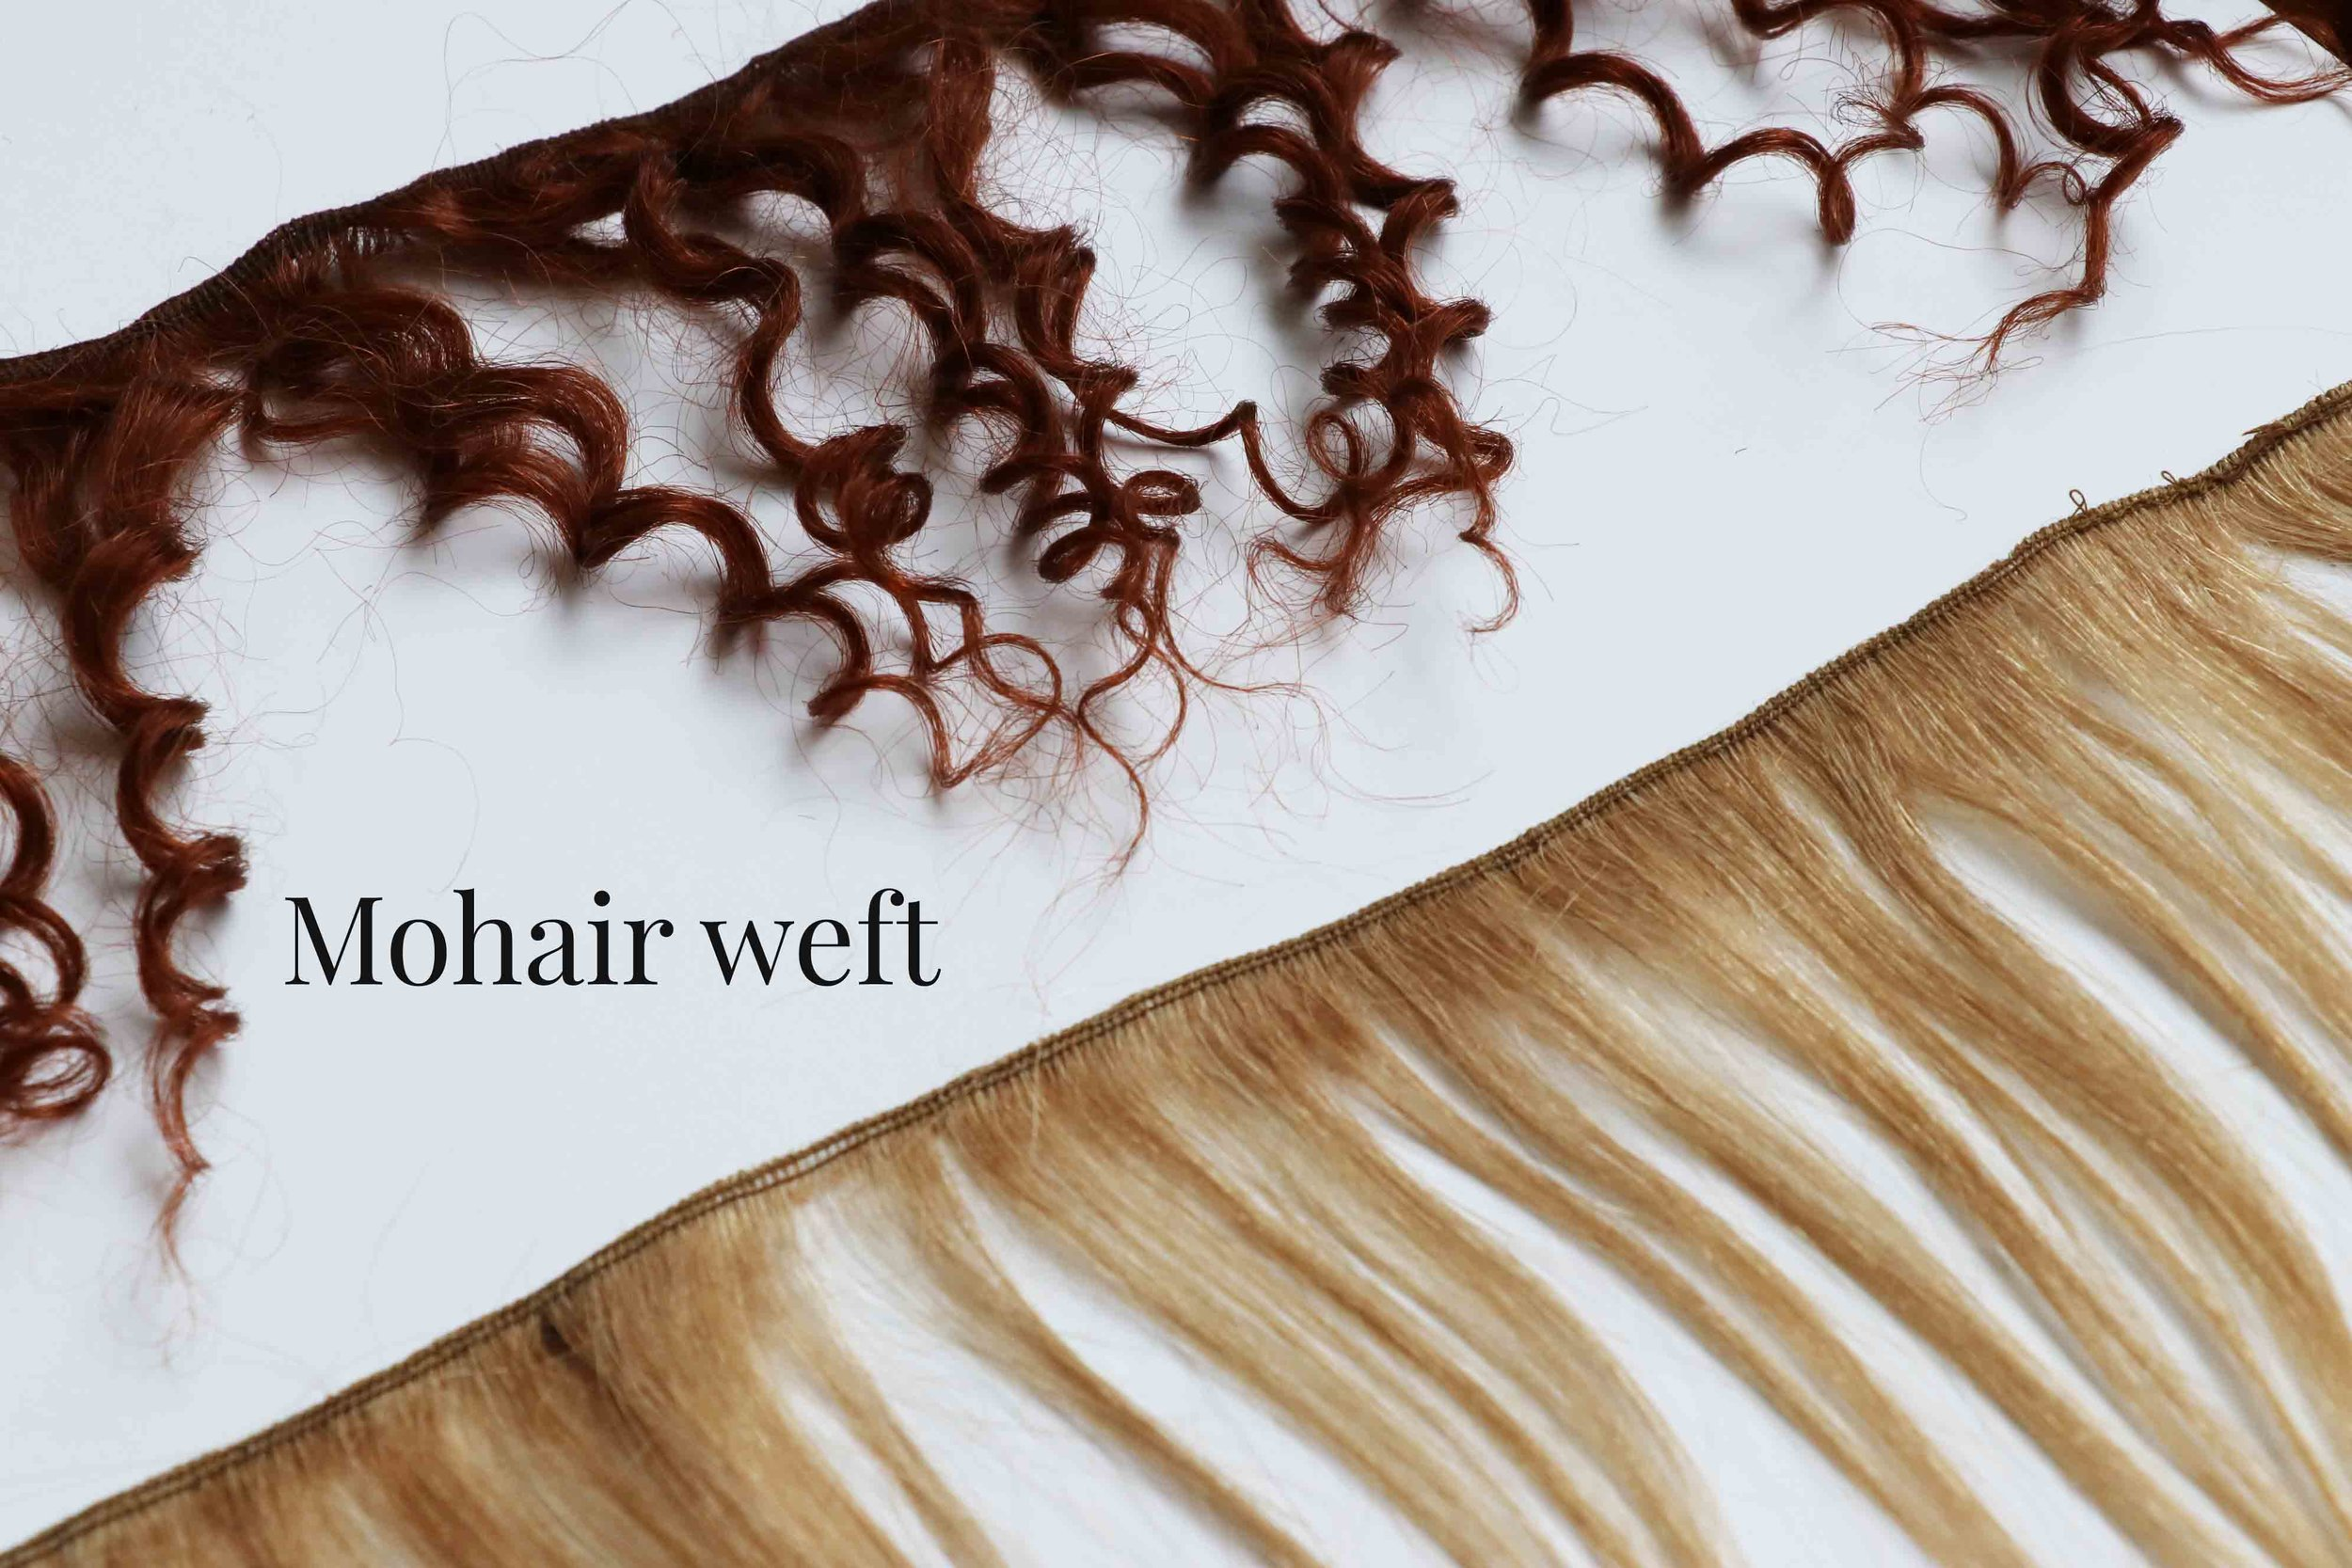 Mohair weft to make doll hair, via Fig and Me